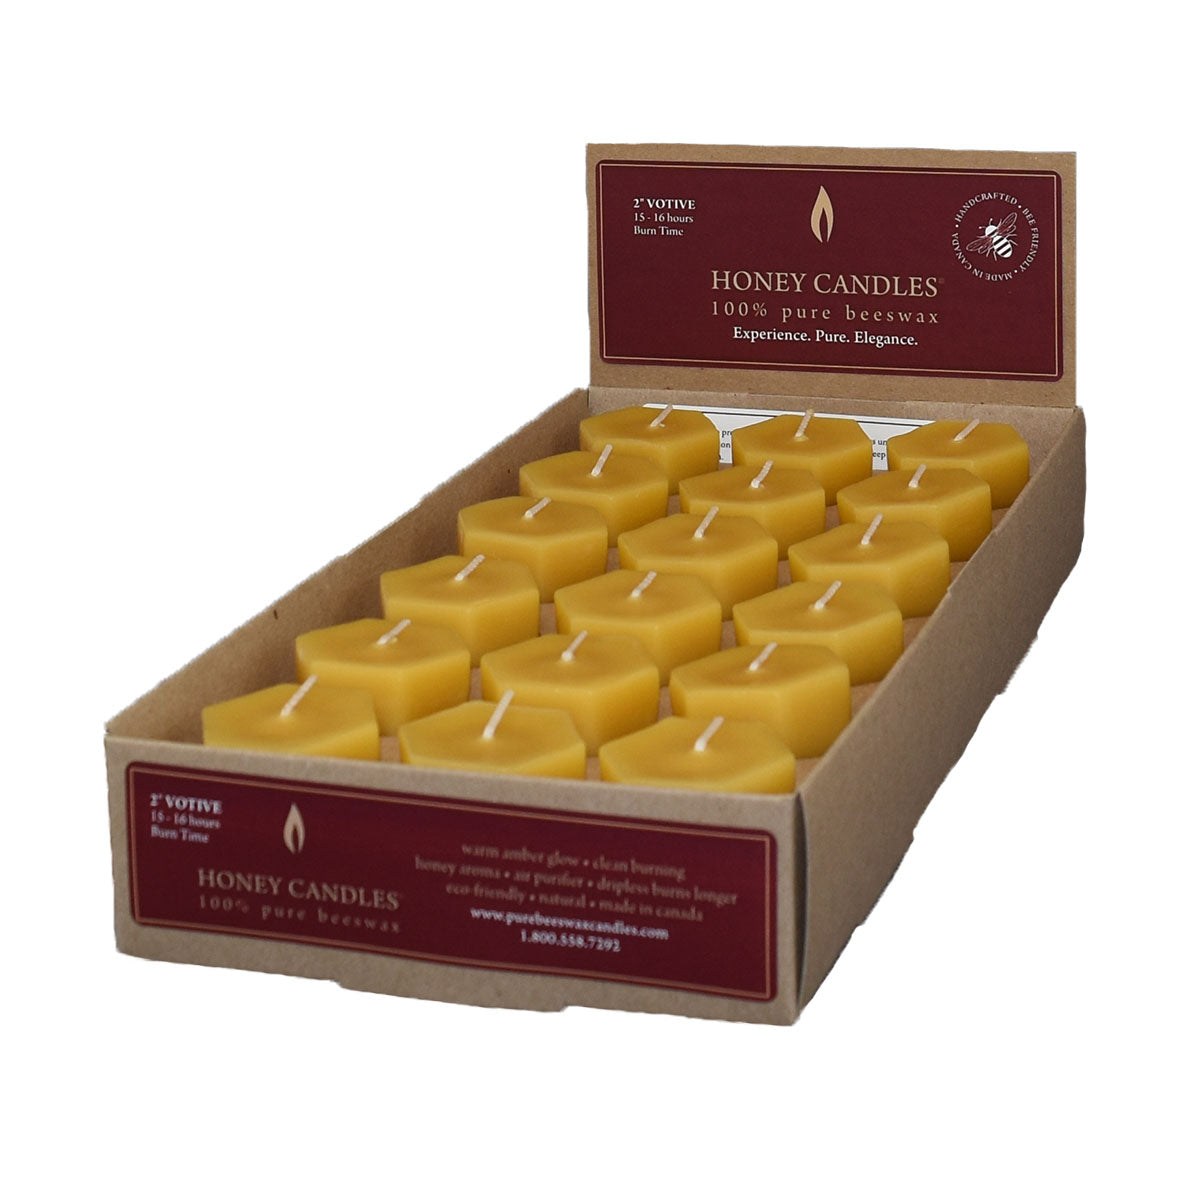 one case of eighteen beeswax votive candles, yellow to golden in color, with a soft honey scent.